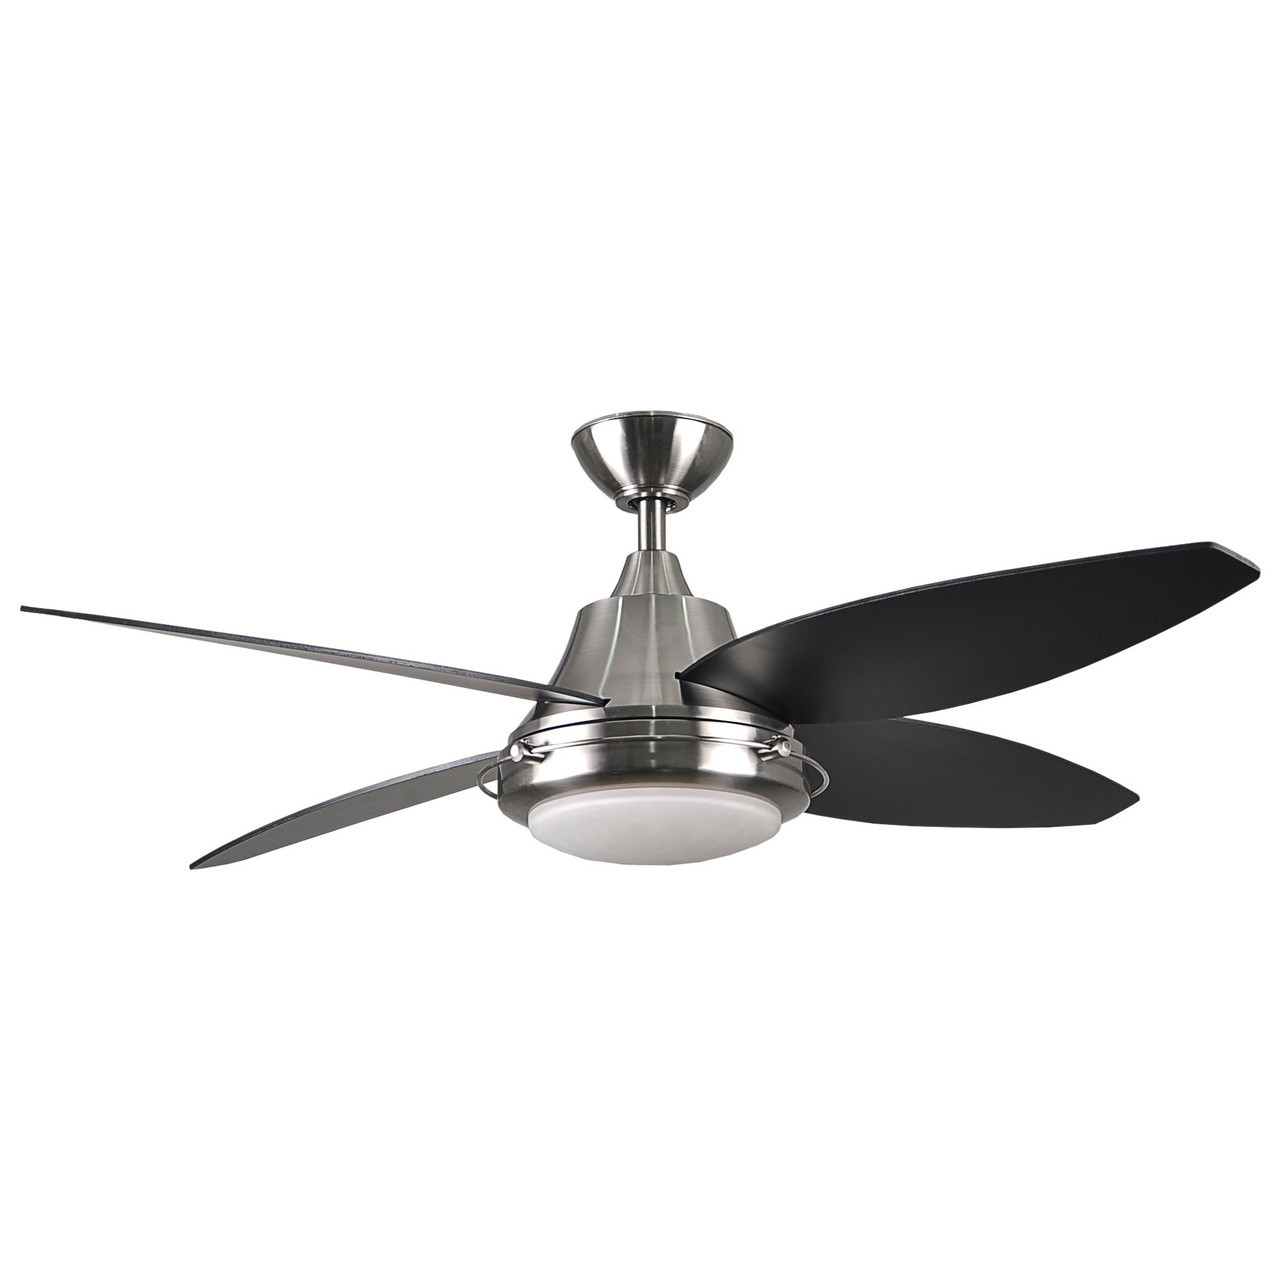 Ceiling Fans with Light